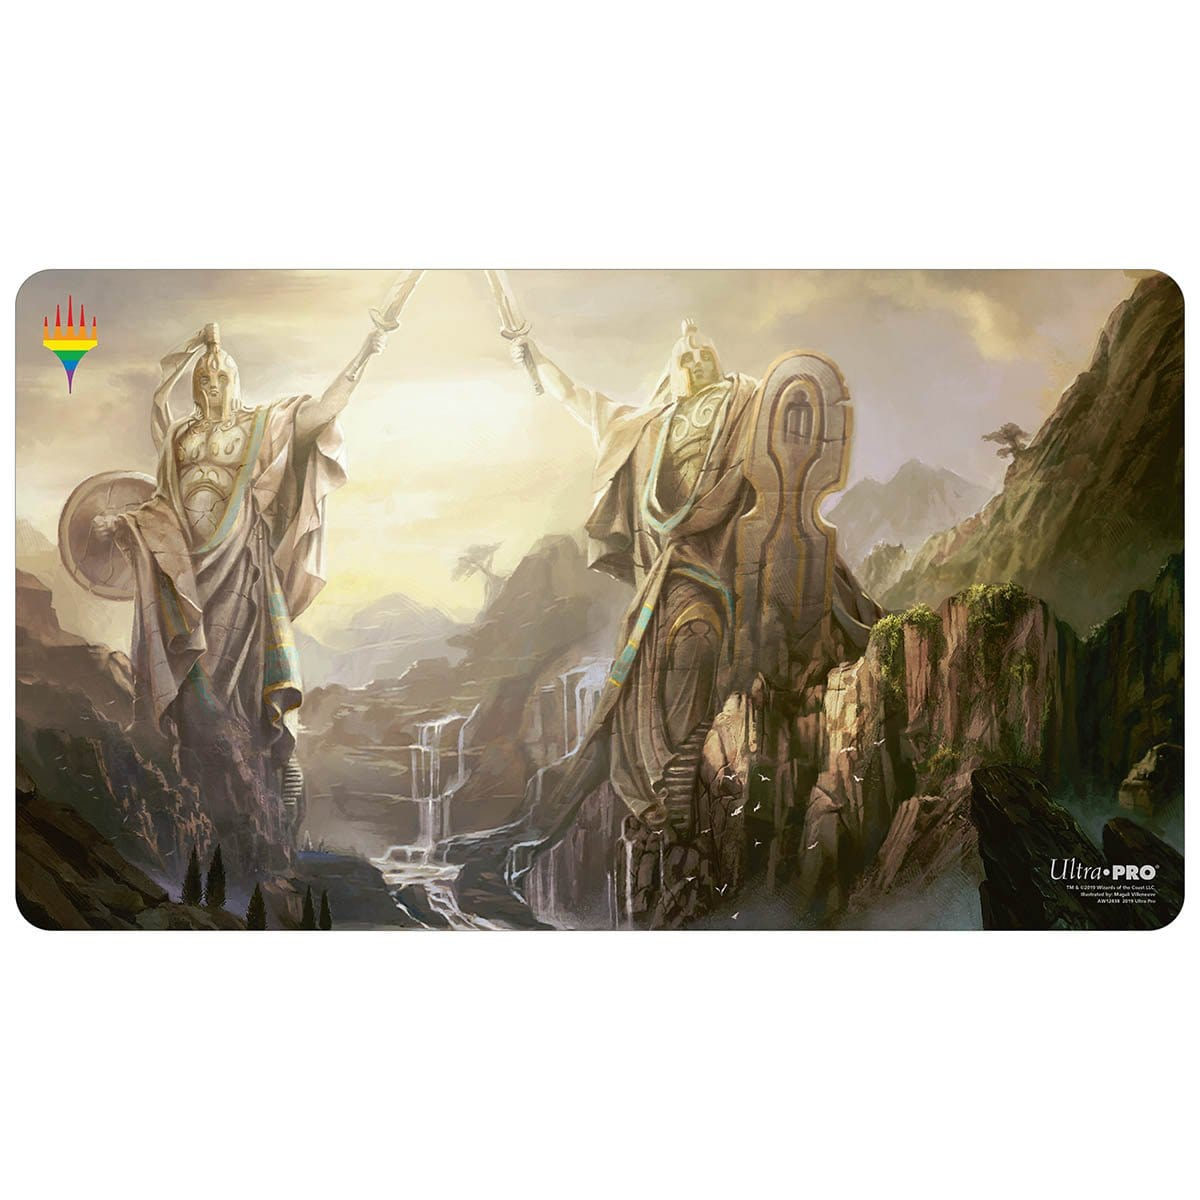 Guardians of Meletis Playmat - Pride 2019 - Playmat - Original Magic Art - Accessories for Magic the Gathering and other card games